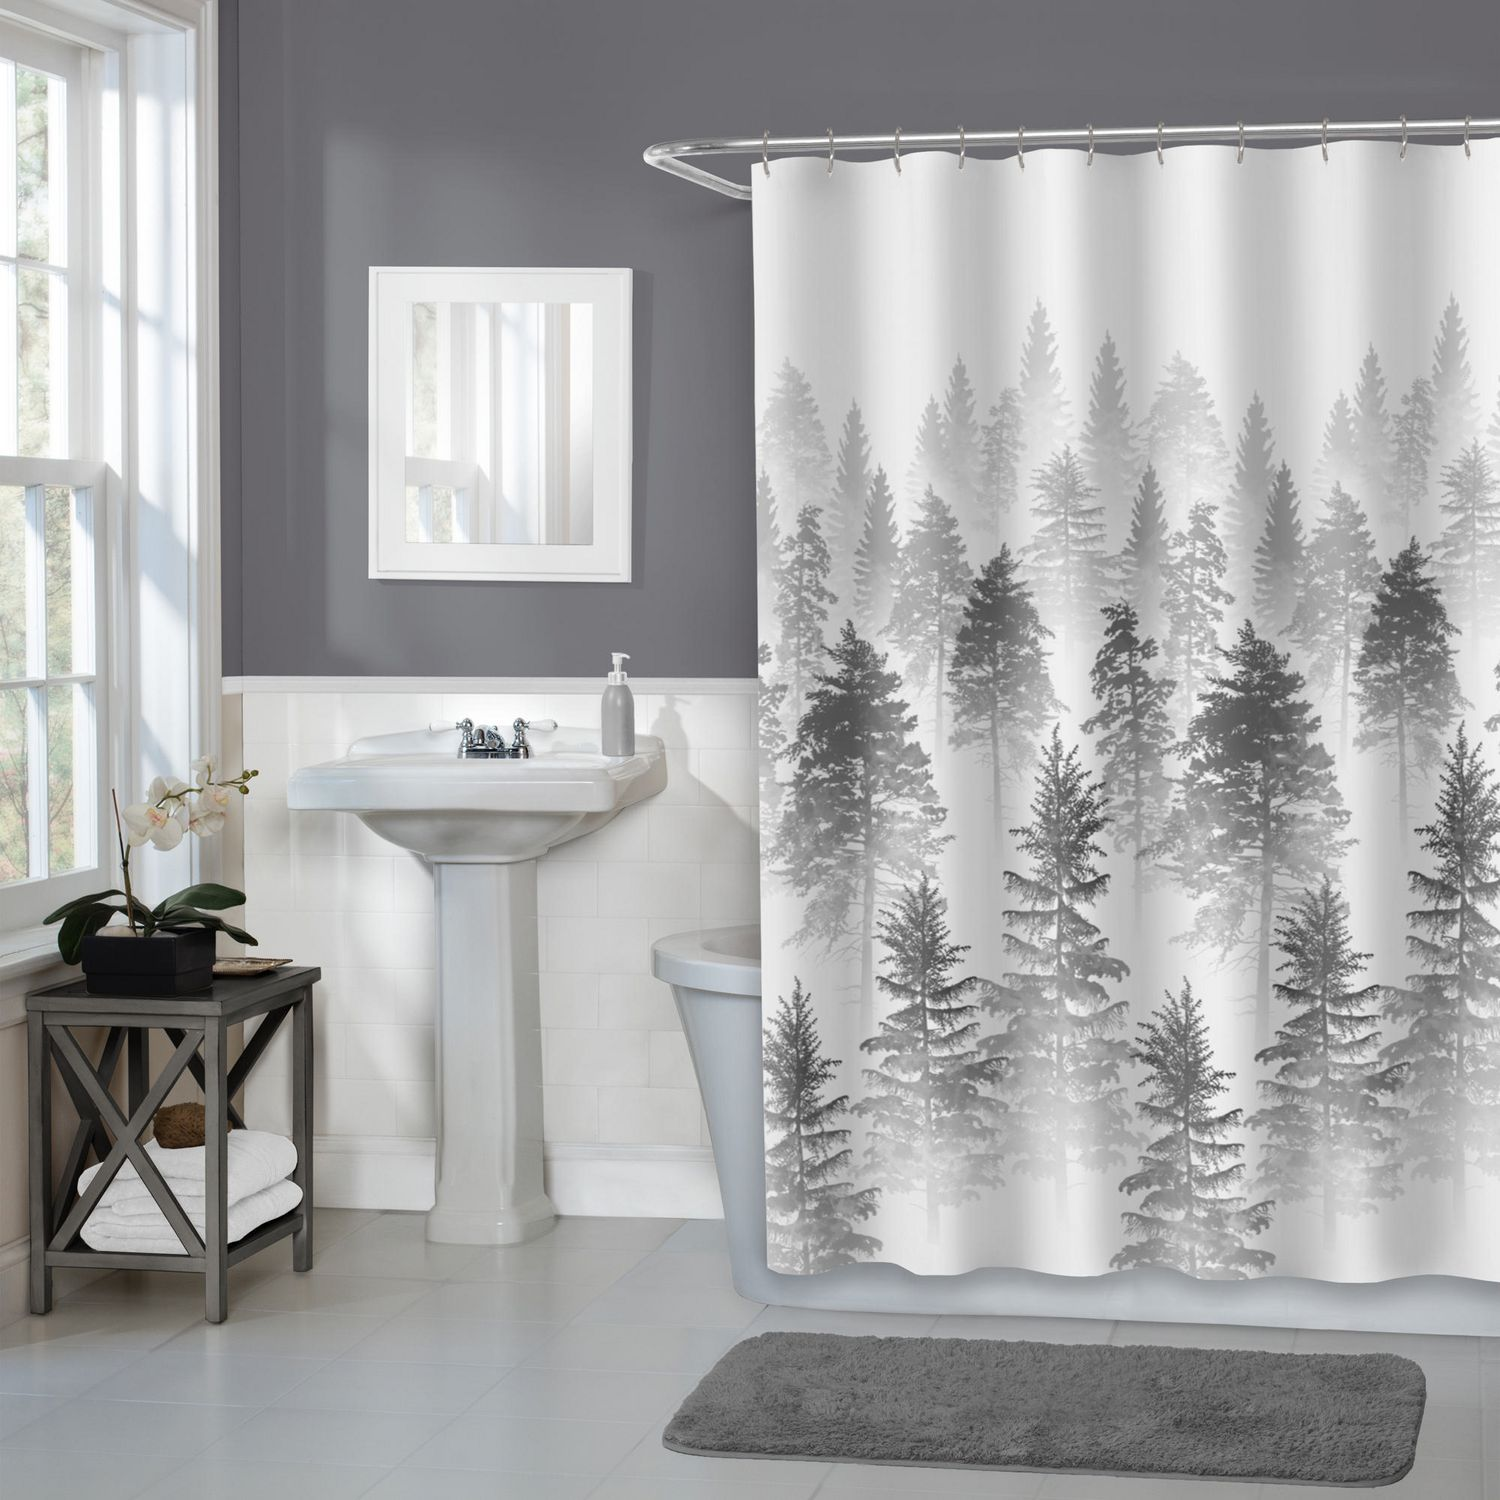 hometrends home trends aspen fabric shower curtain 70 inches x 72 inches grey